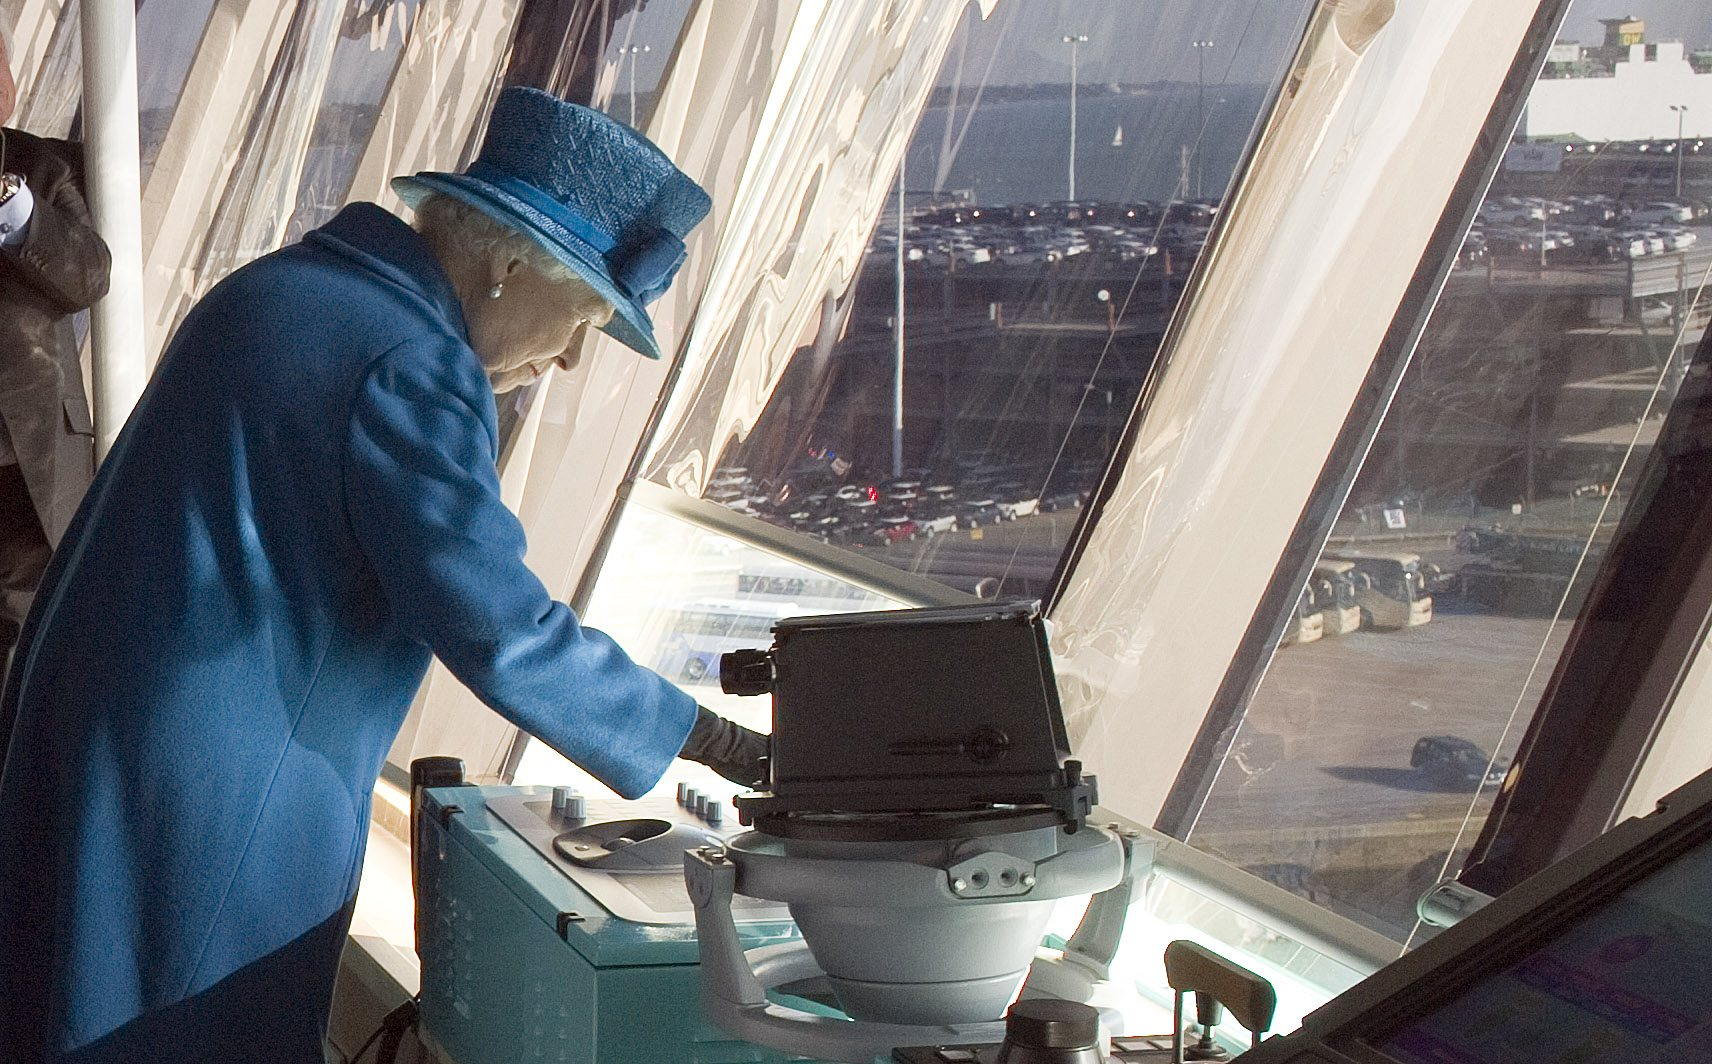 Queen Elizabeth II presses the ship's siren during a tour of the Cunard's new cruise-liner Queen Elizabeth II